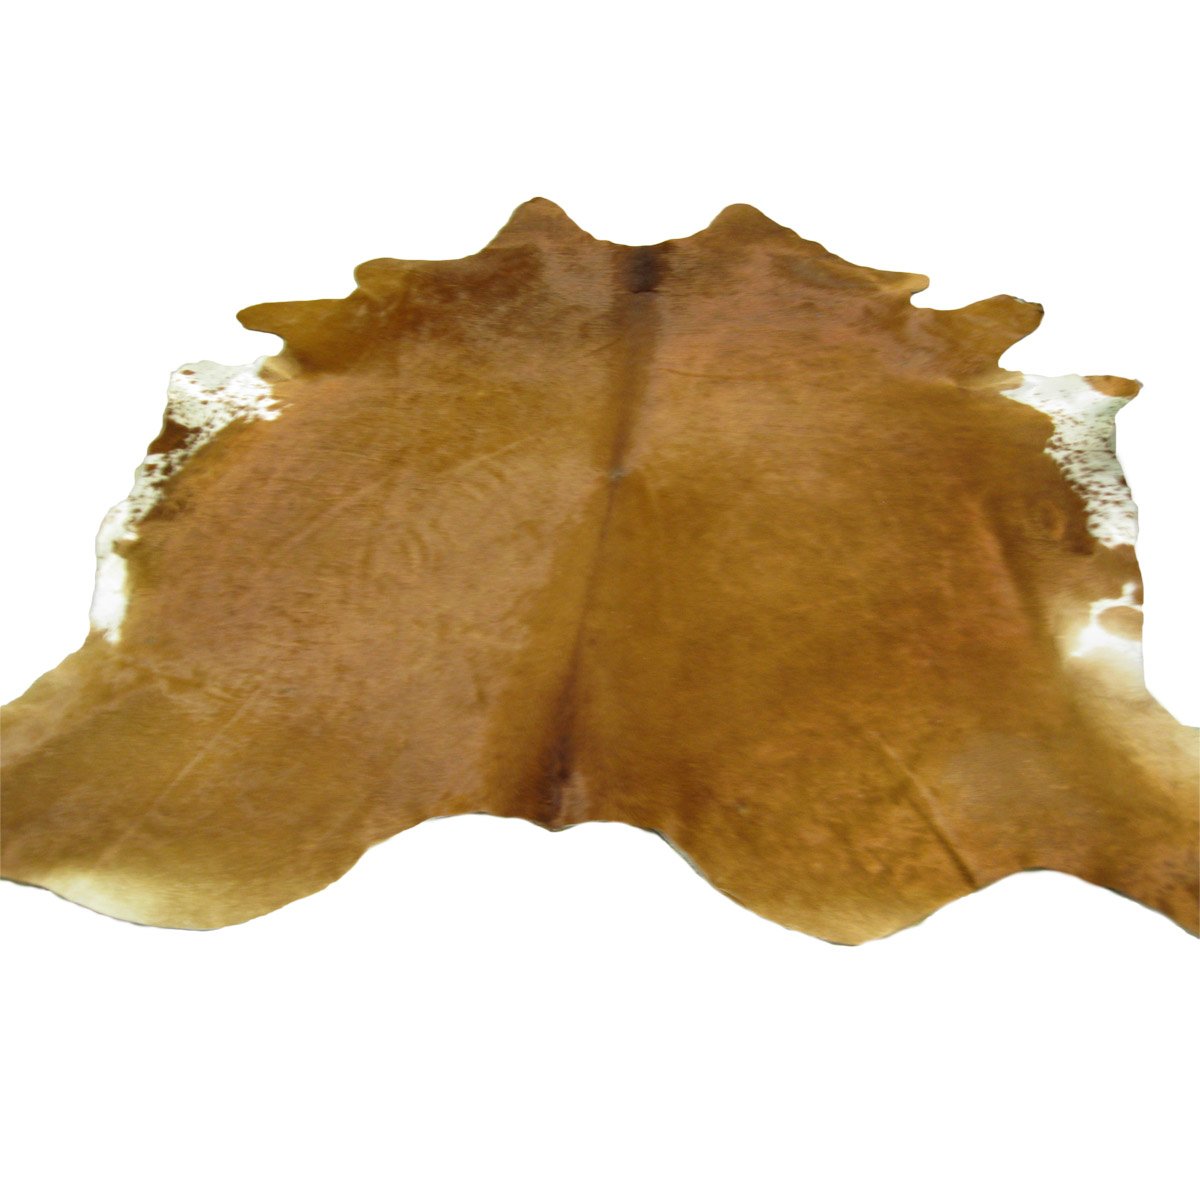 Cowhide Rug - Brown & White